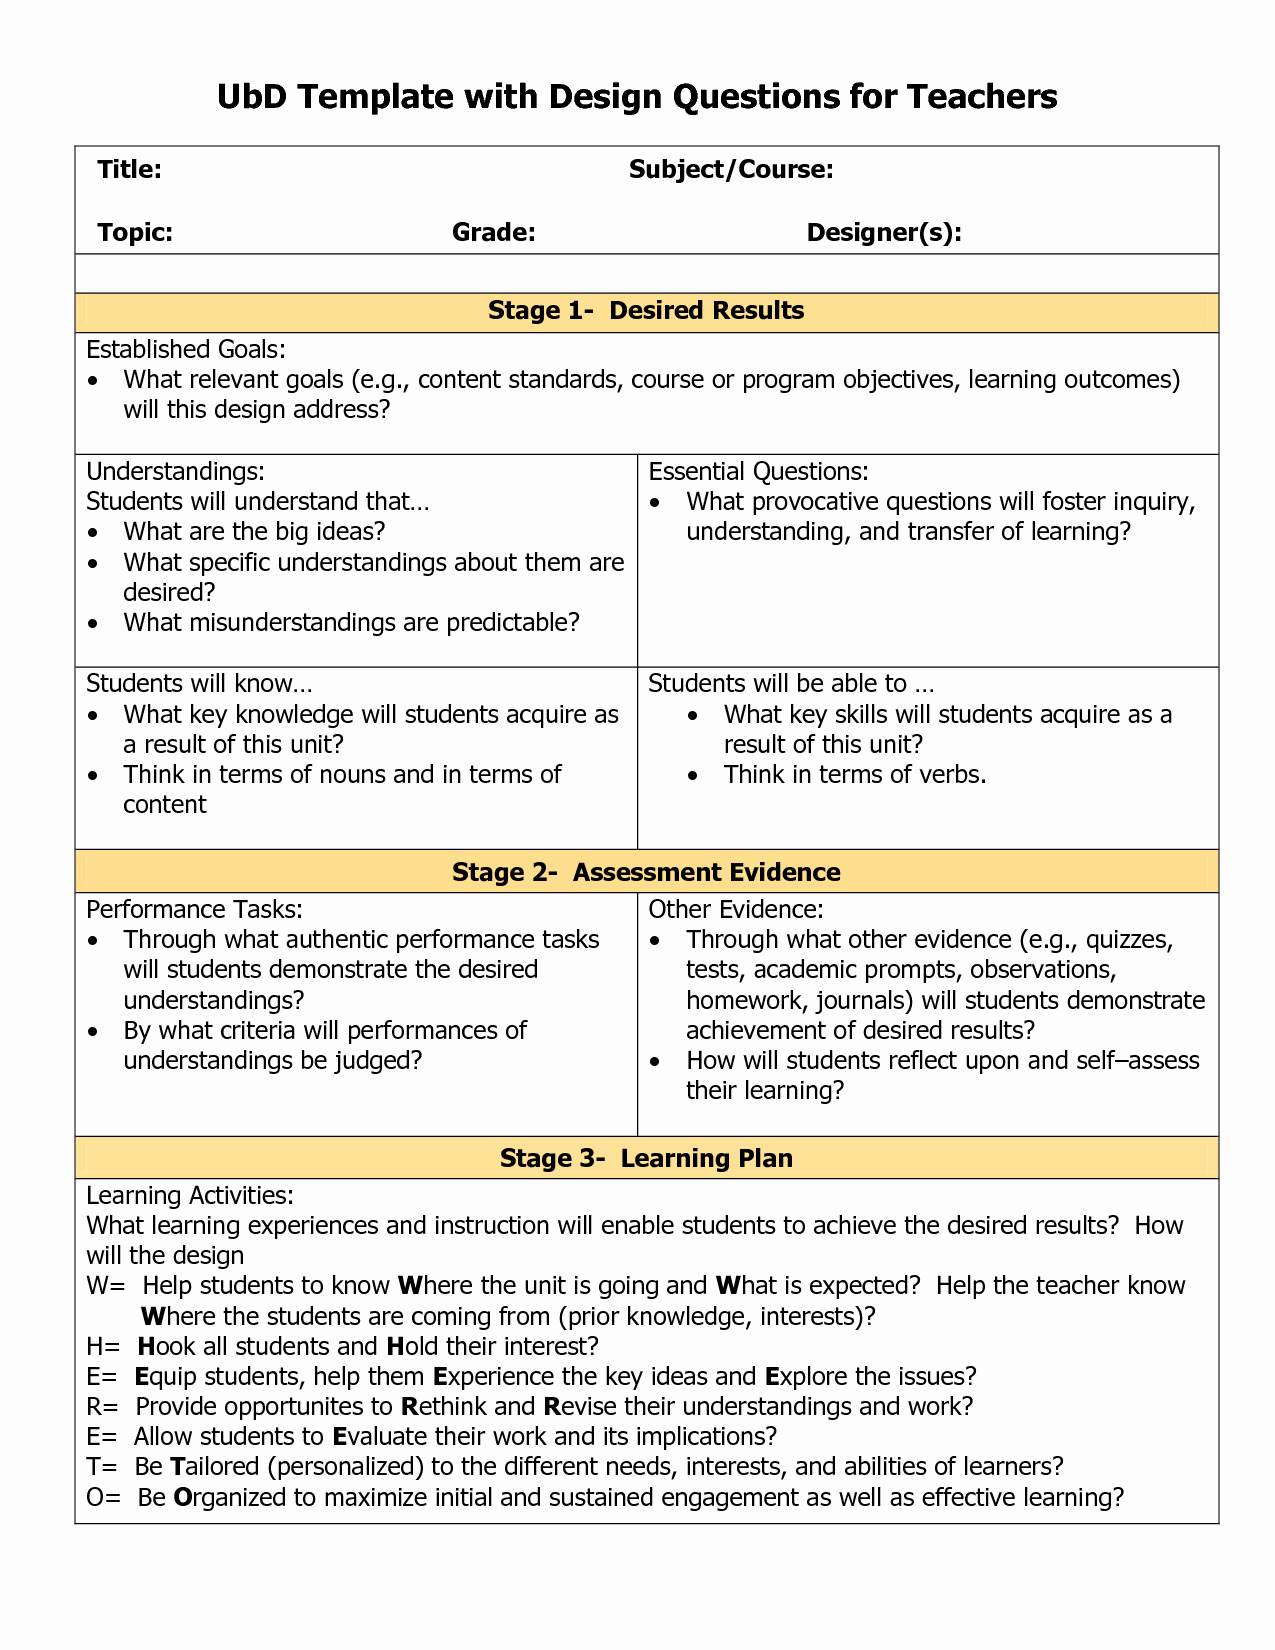 Backwards Design Lesson Plan Template Inspirational Blank Ubd Template Things for the Classroom